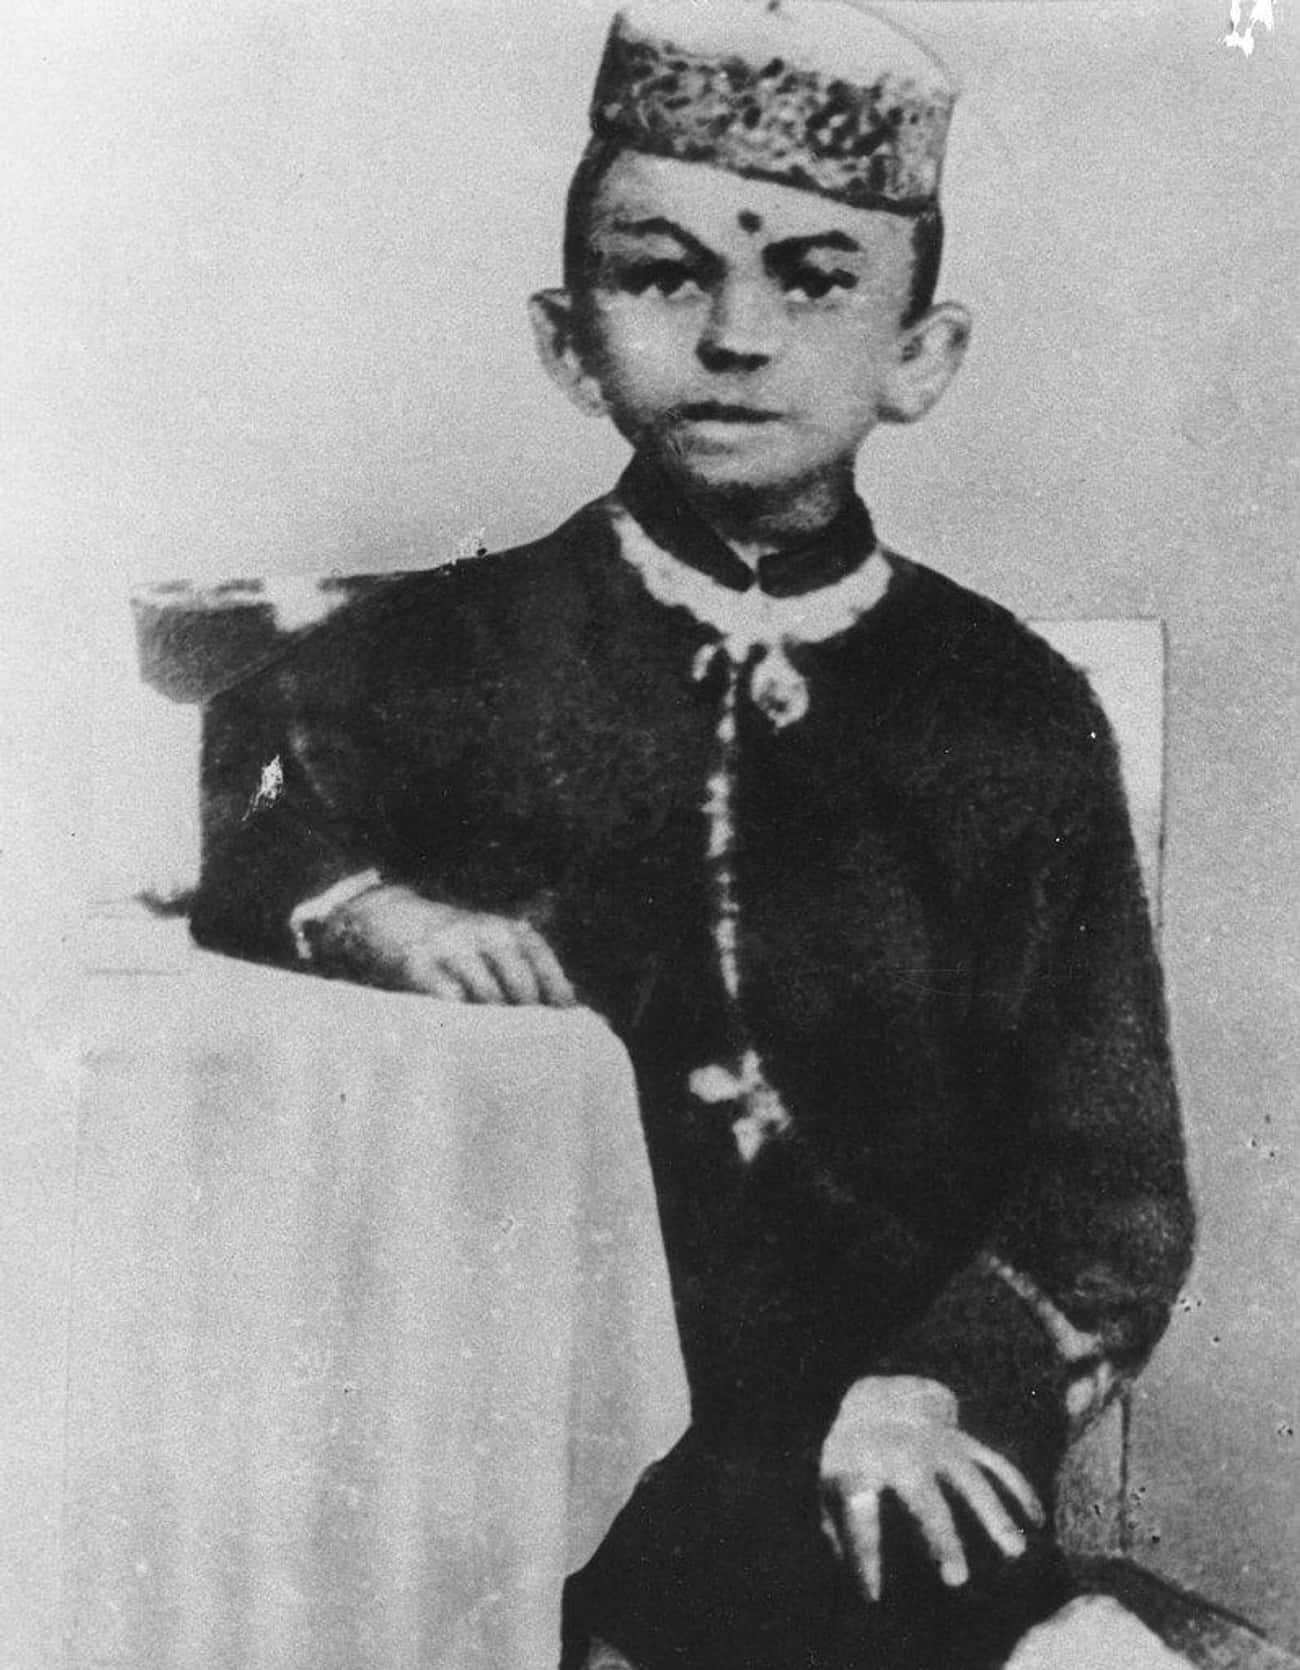 Mohandas Gandhi Was 'Restless' is listed (or ranked) 4 on the list Firsthand Descriptions Of Historical Figures As Children